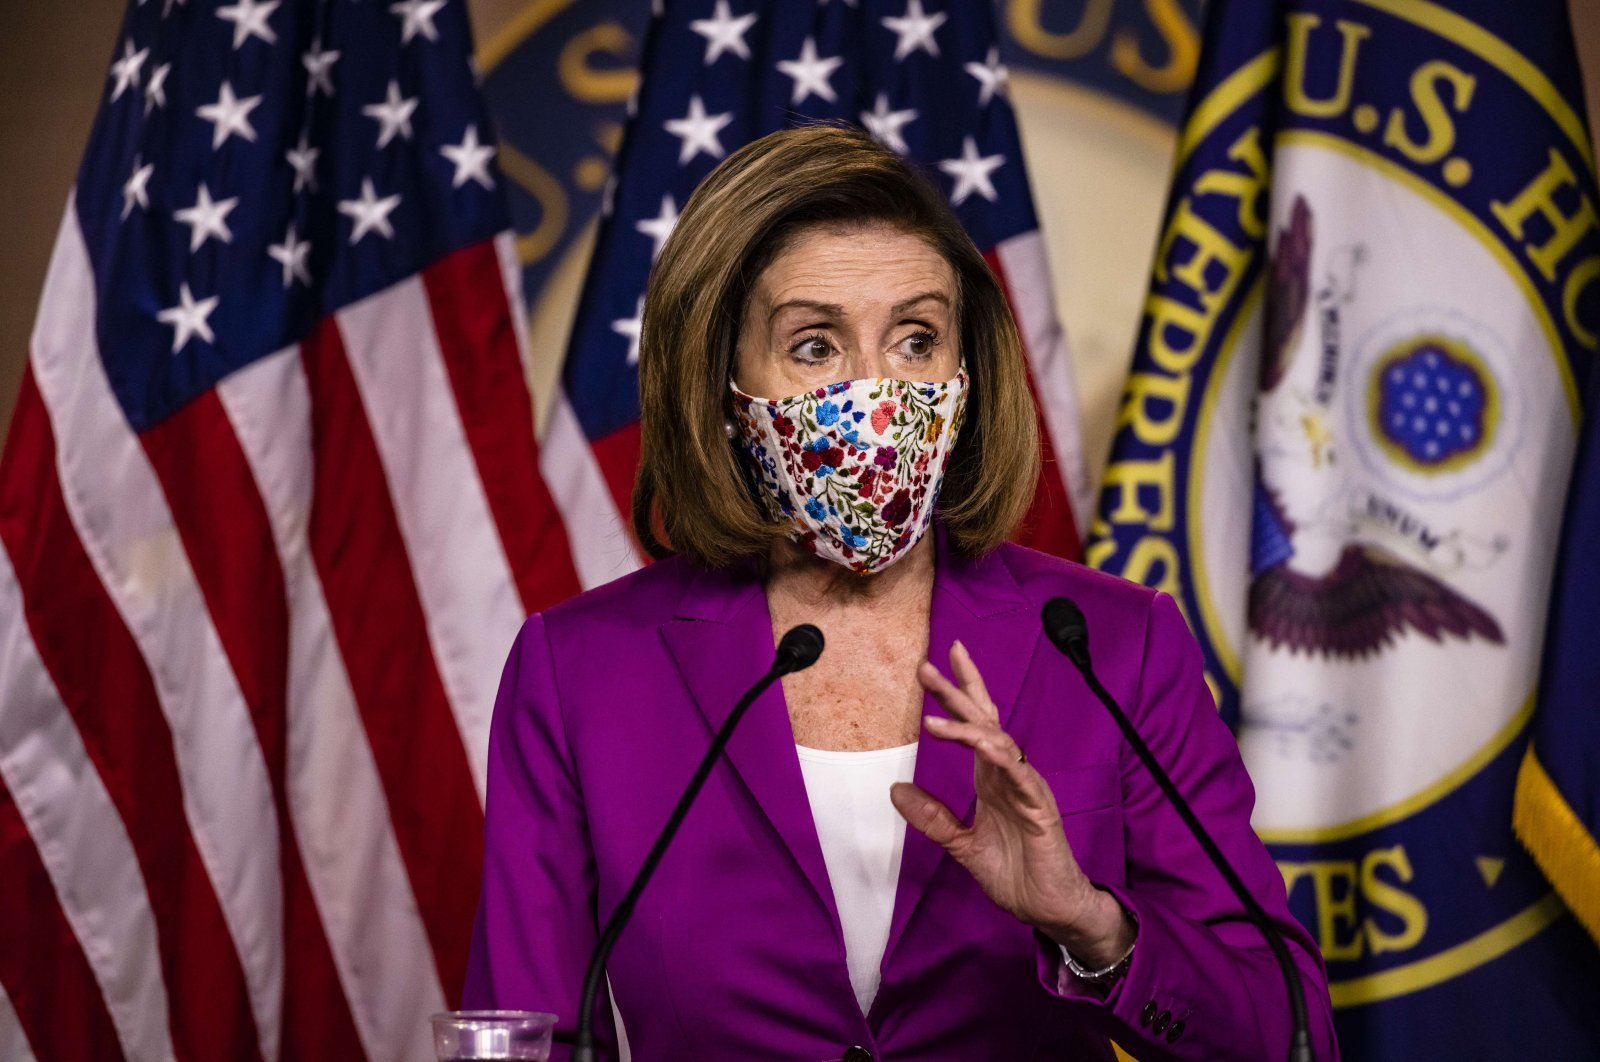 Speaker of the House Nancy Pelosi calls for the removal of President Donald Trump from office either by invocation of the 25th Amendment by Vice President Mike Pence and a majority of the Cabinet members or Impeachment at the U.S. Capitol on January 7, 2021 in Washington, DC. (AFP Photo)